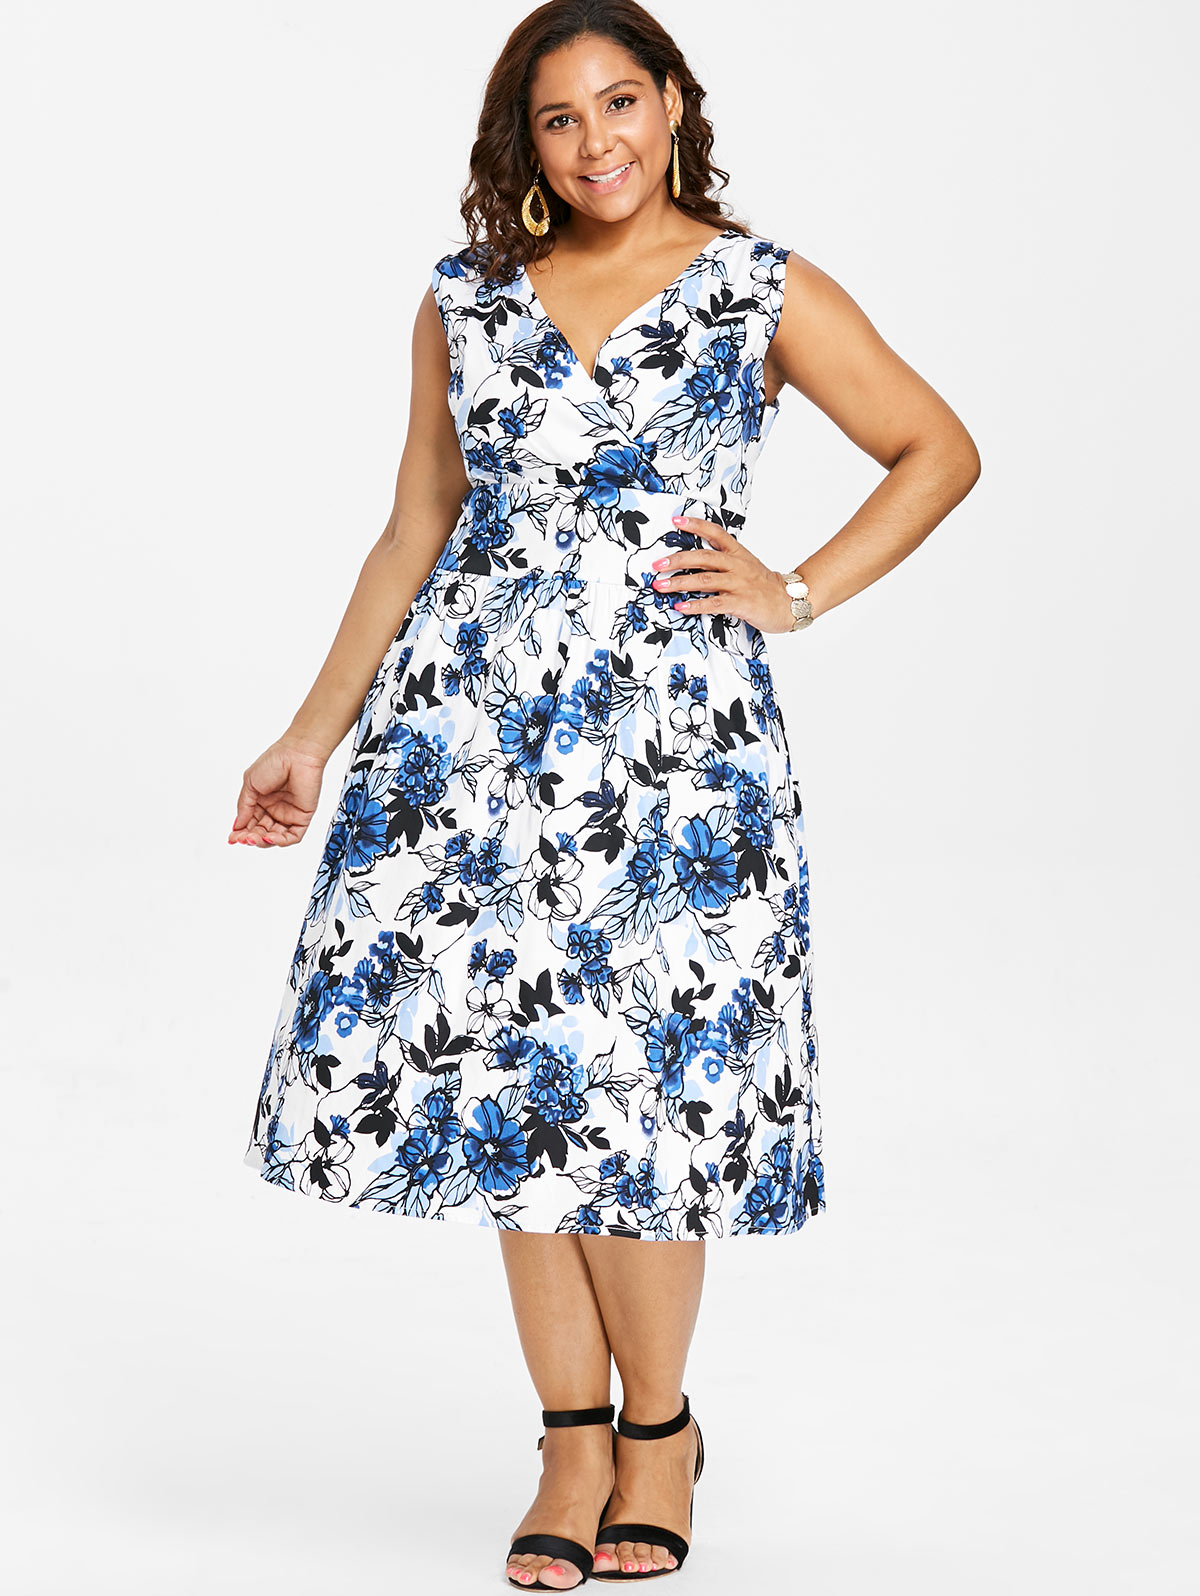 US $17.69 52% OFF|Wipalo Plus Size Print Vintage Surplice Sleeveless Fit  And Flare Dress Women Midi Dress Causal A Line Dress Big Size Robe Femme-in  ...